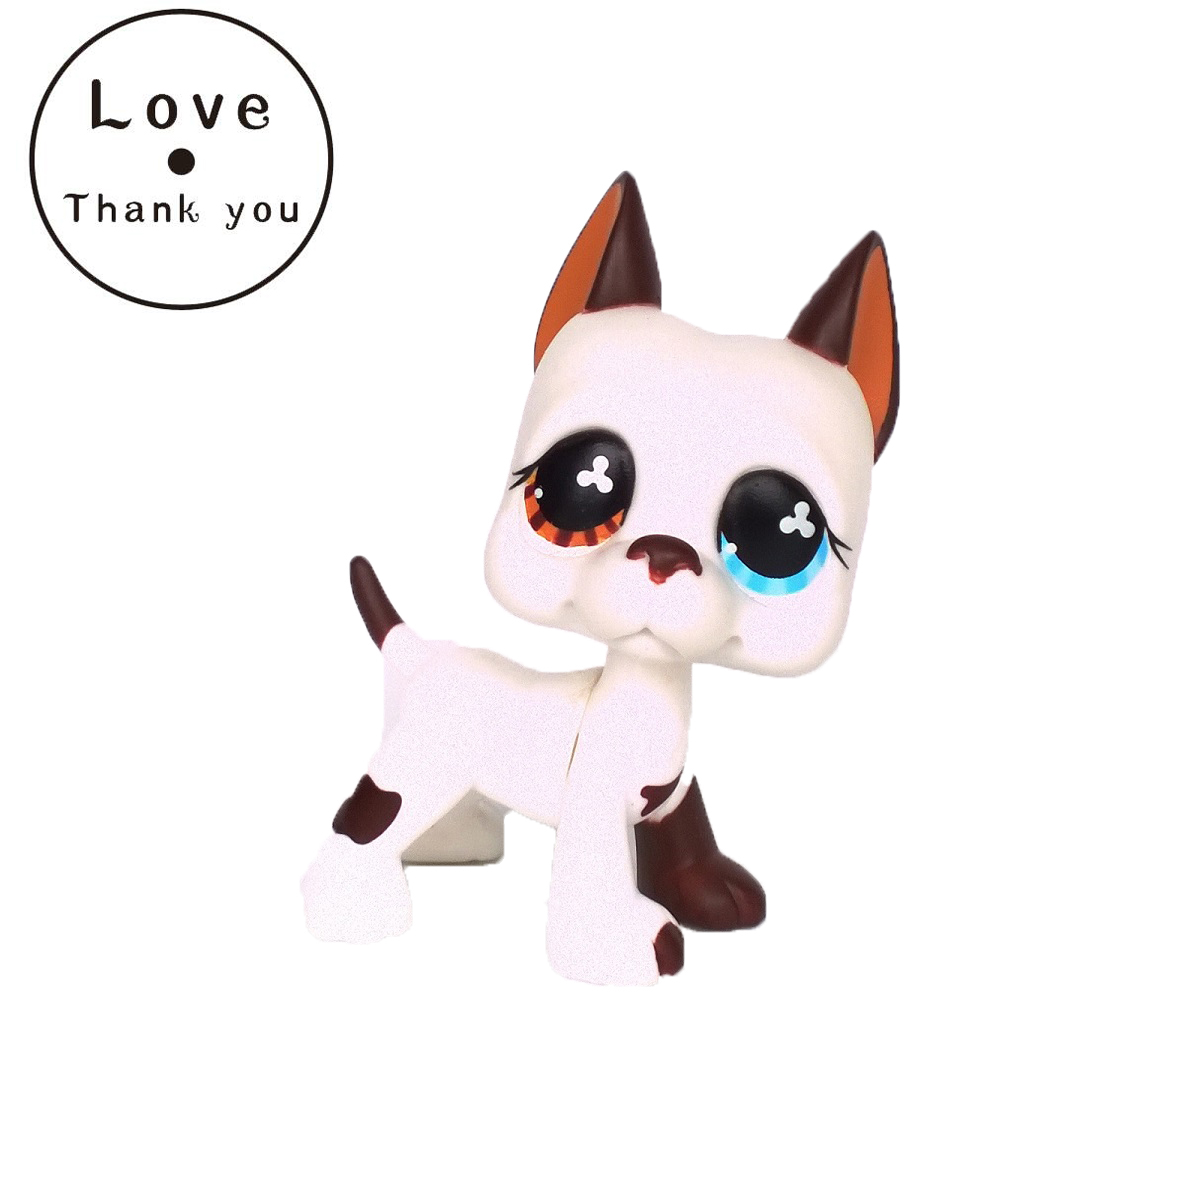 pet toys Great Dane Dog #577 Blue Brown Flowered Eyes White Puppy Figure Child Toy Without Magnet Dog Gift usb powered funny cute stress relieving humping spot dog toy brown chocolate white